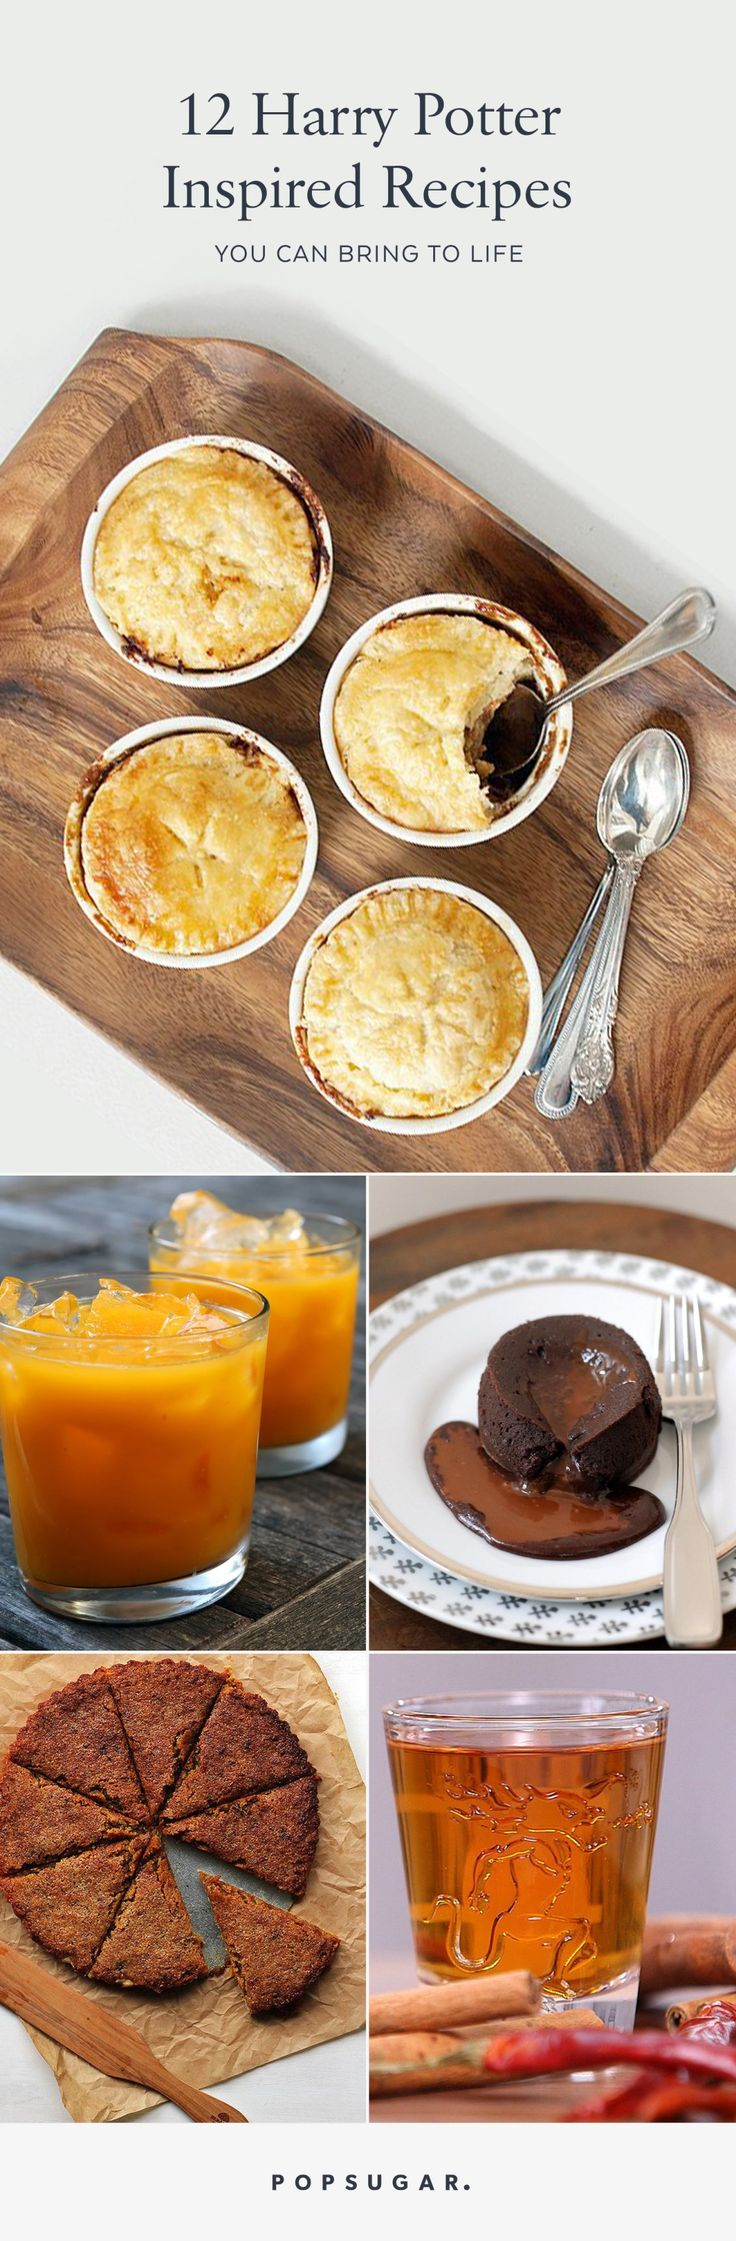 One thing we can bring to life is the food and drinks mentioned in Harry Potter. These recipes are absolutely doable to do at home and perfect for a Harry Potter themed Halloween party.